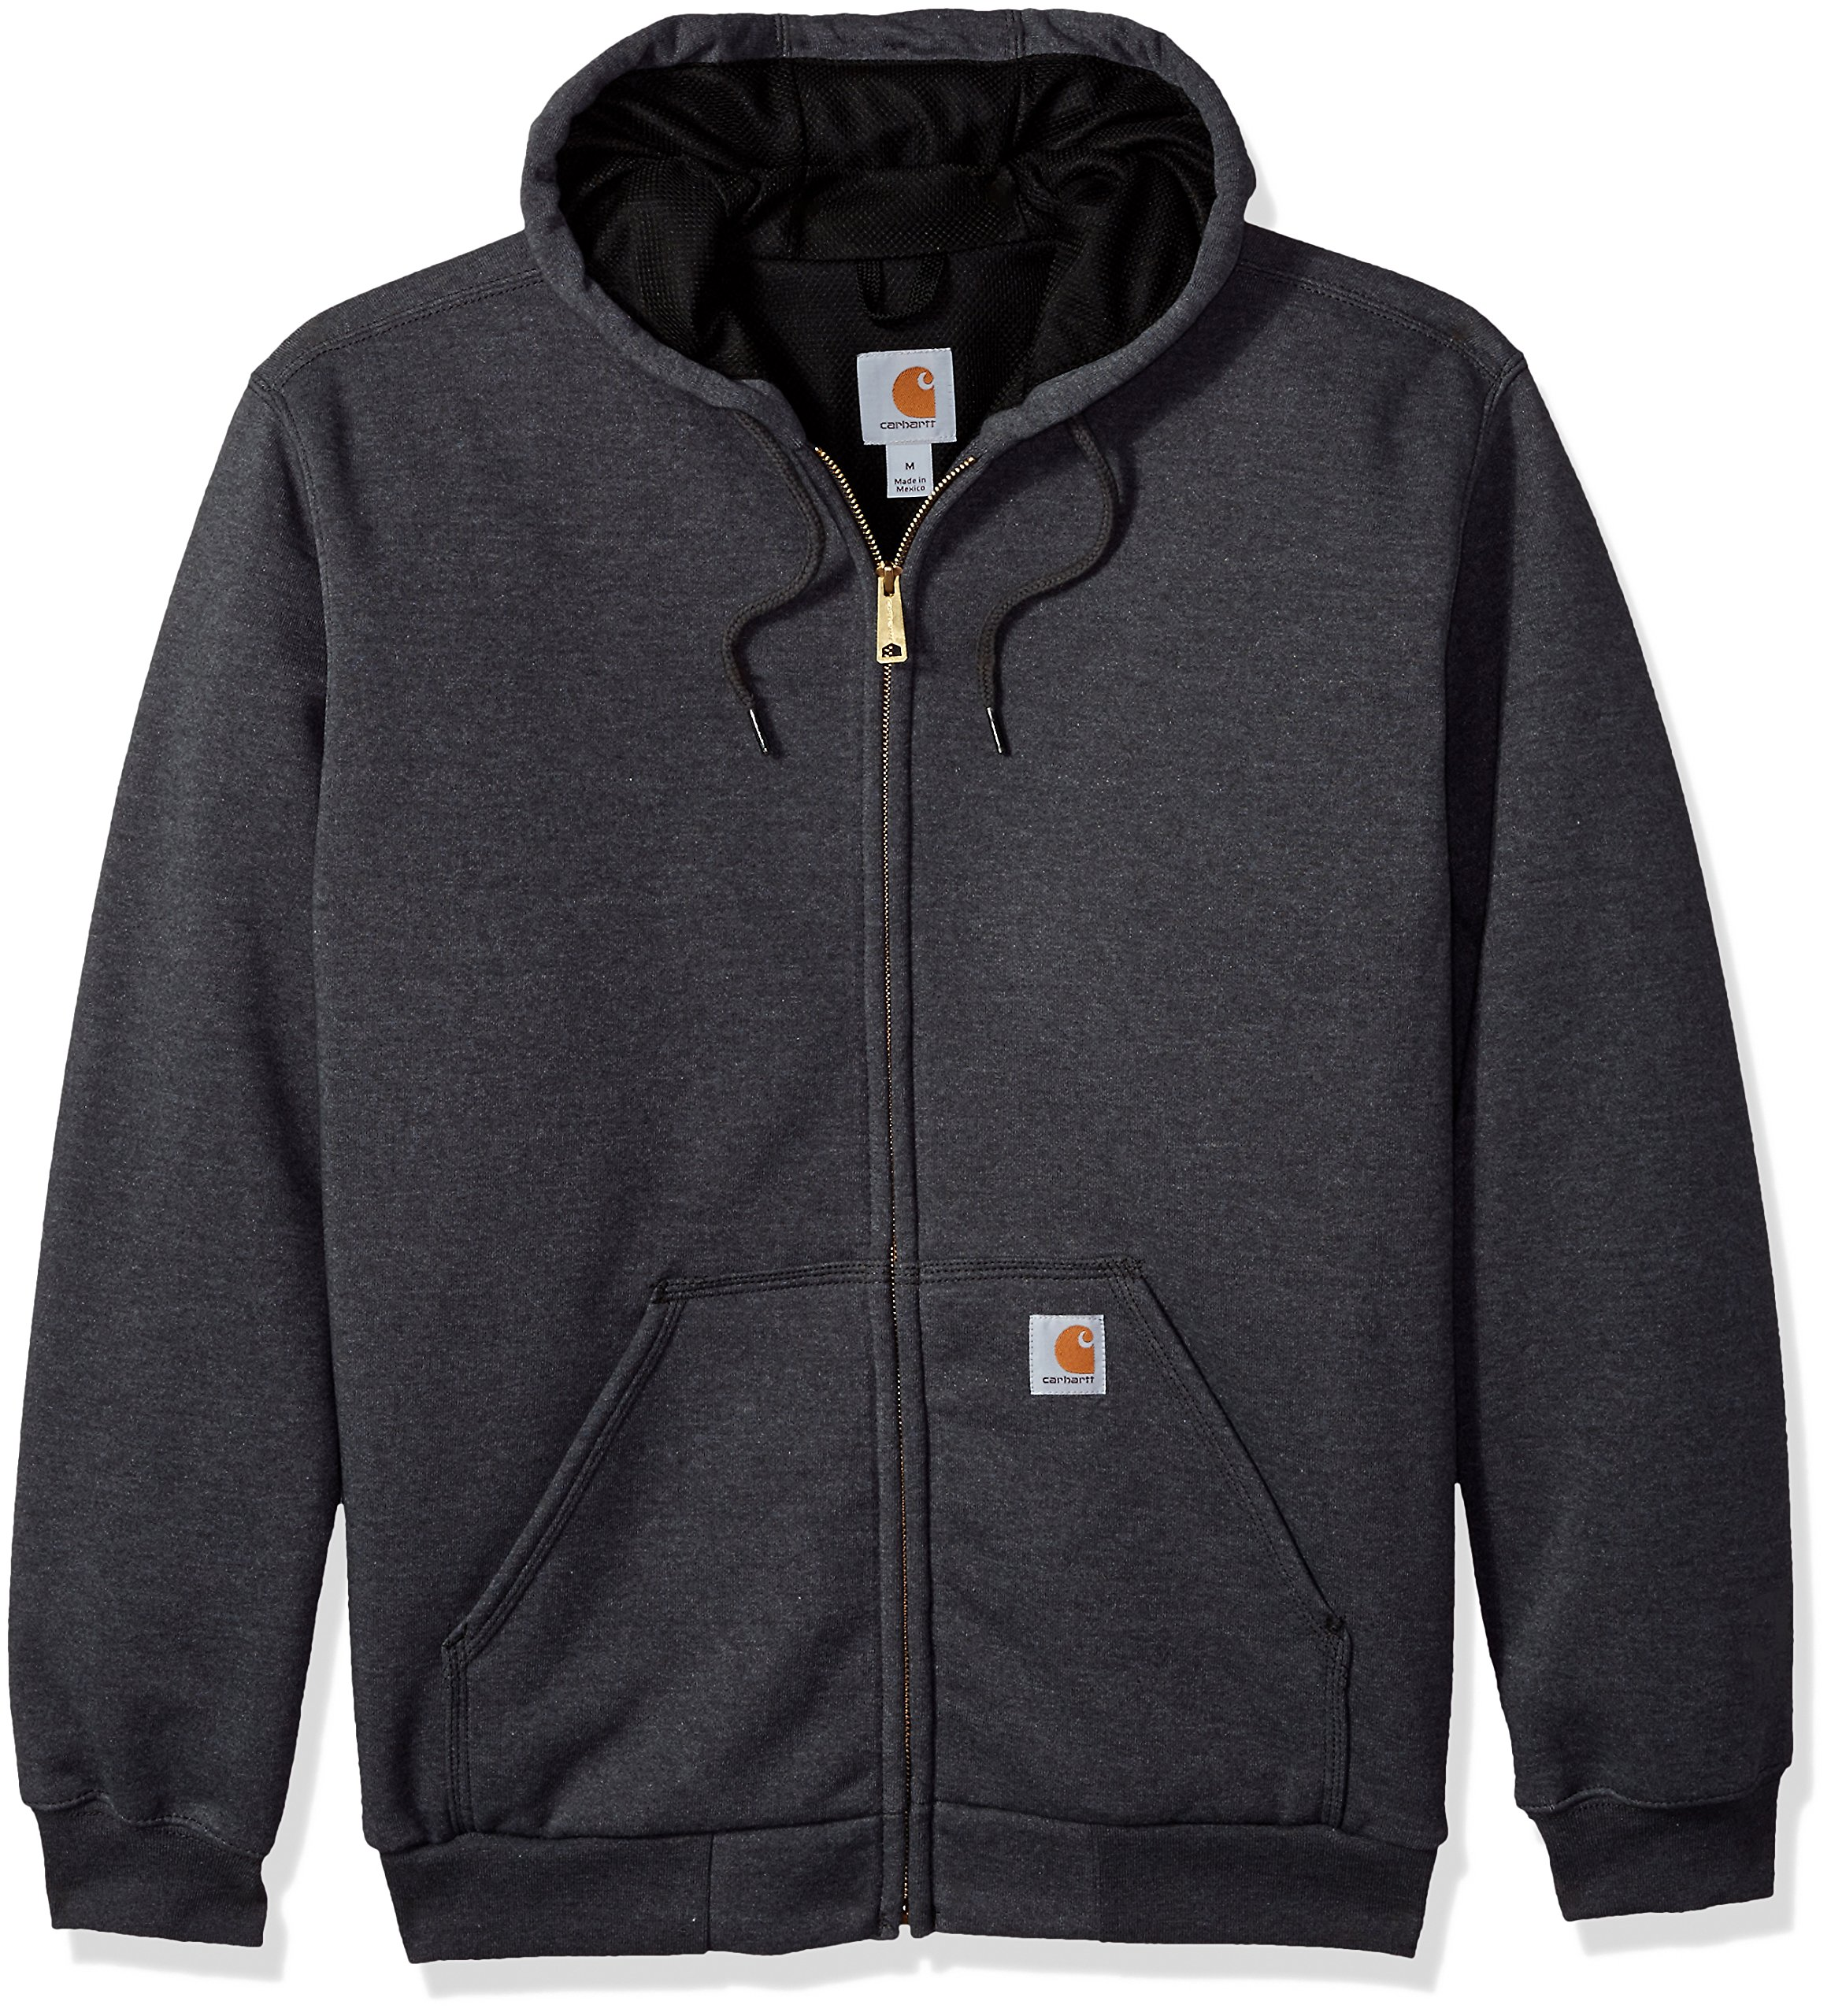 Carhartt Men's RD Rutland Thermal Lined Hooded Zip Front Sweatshirt, Carbon Heather - New, Large by Carhartt